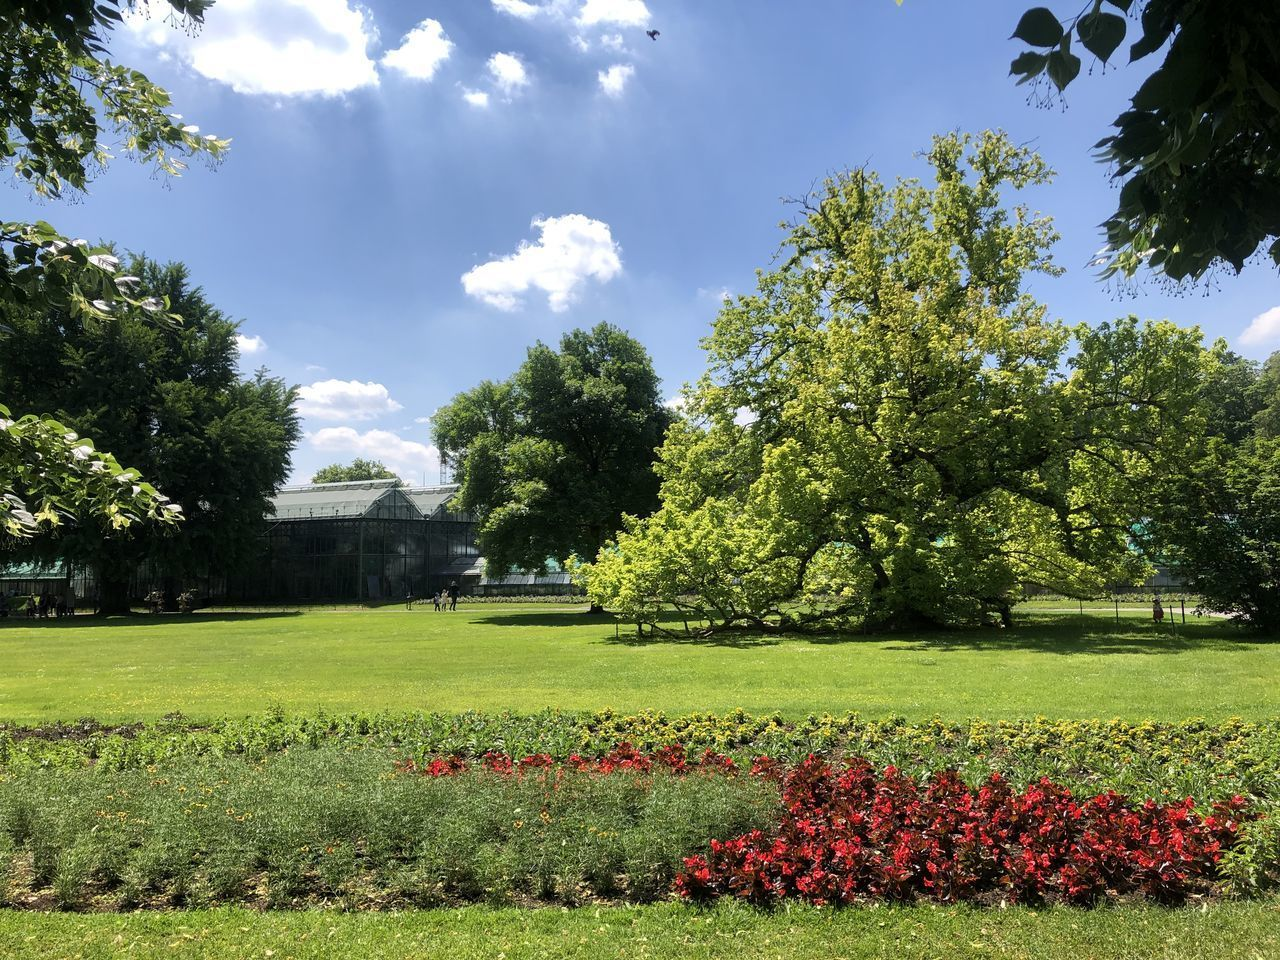 SCENIC VIEW OF FLOWERING PLANTS AND TREES IN PARK